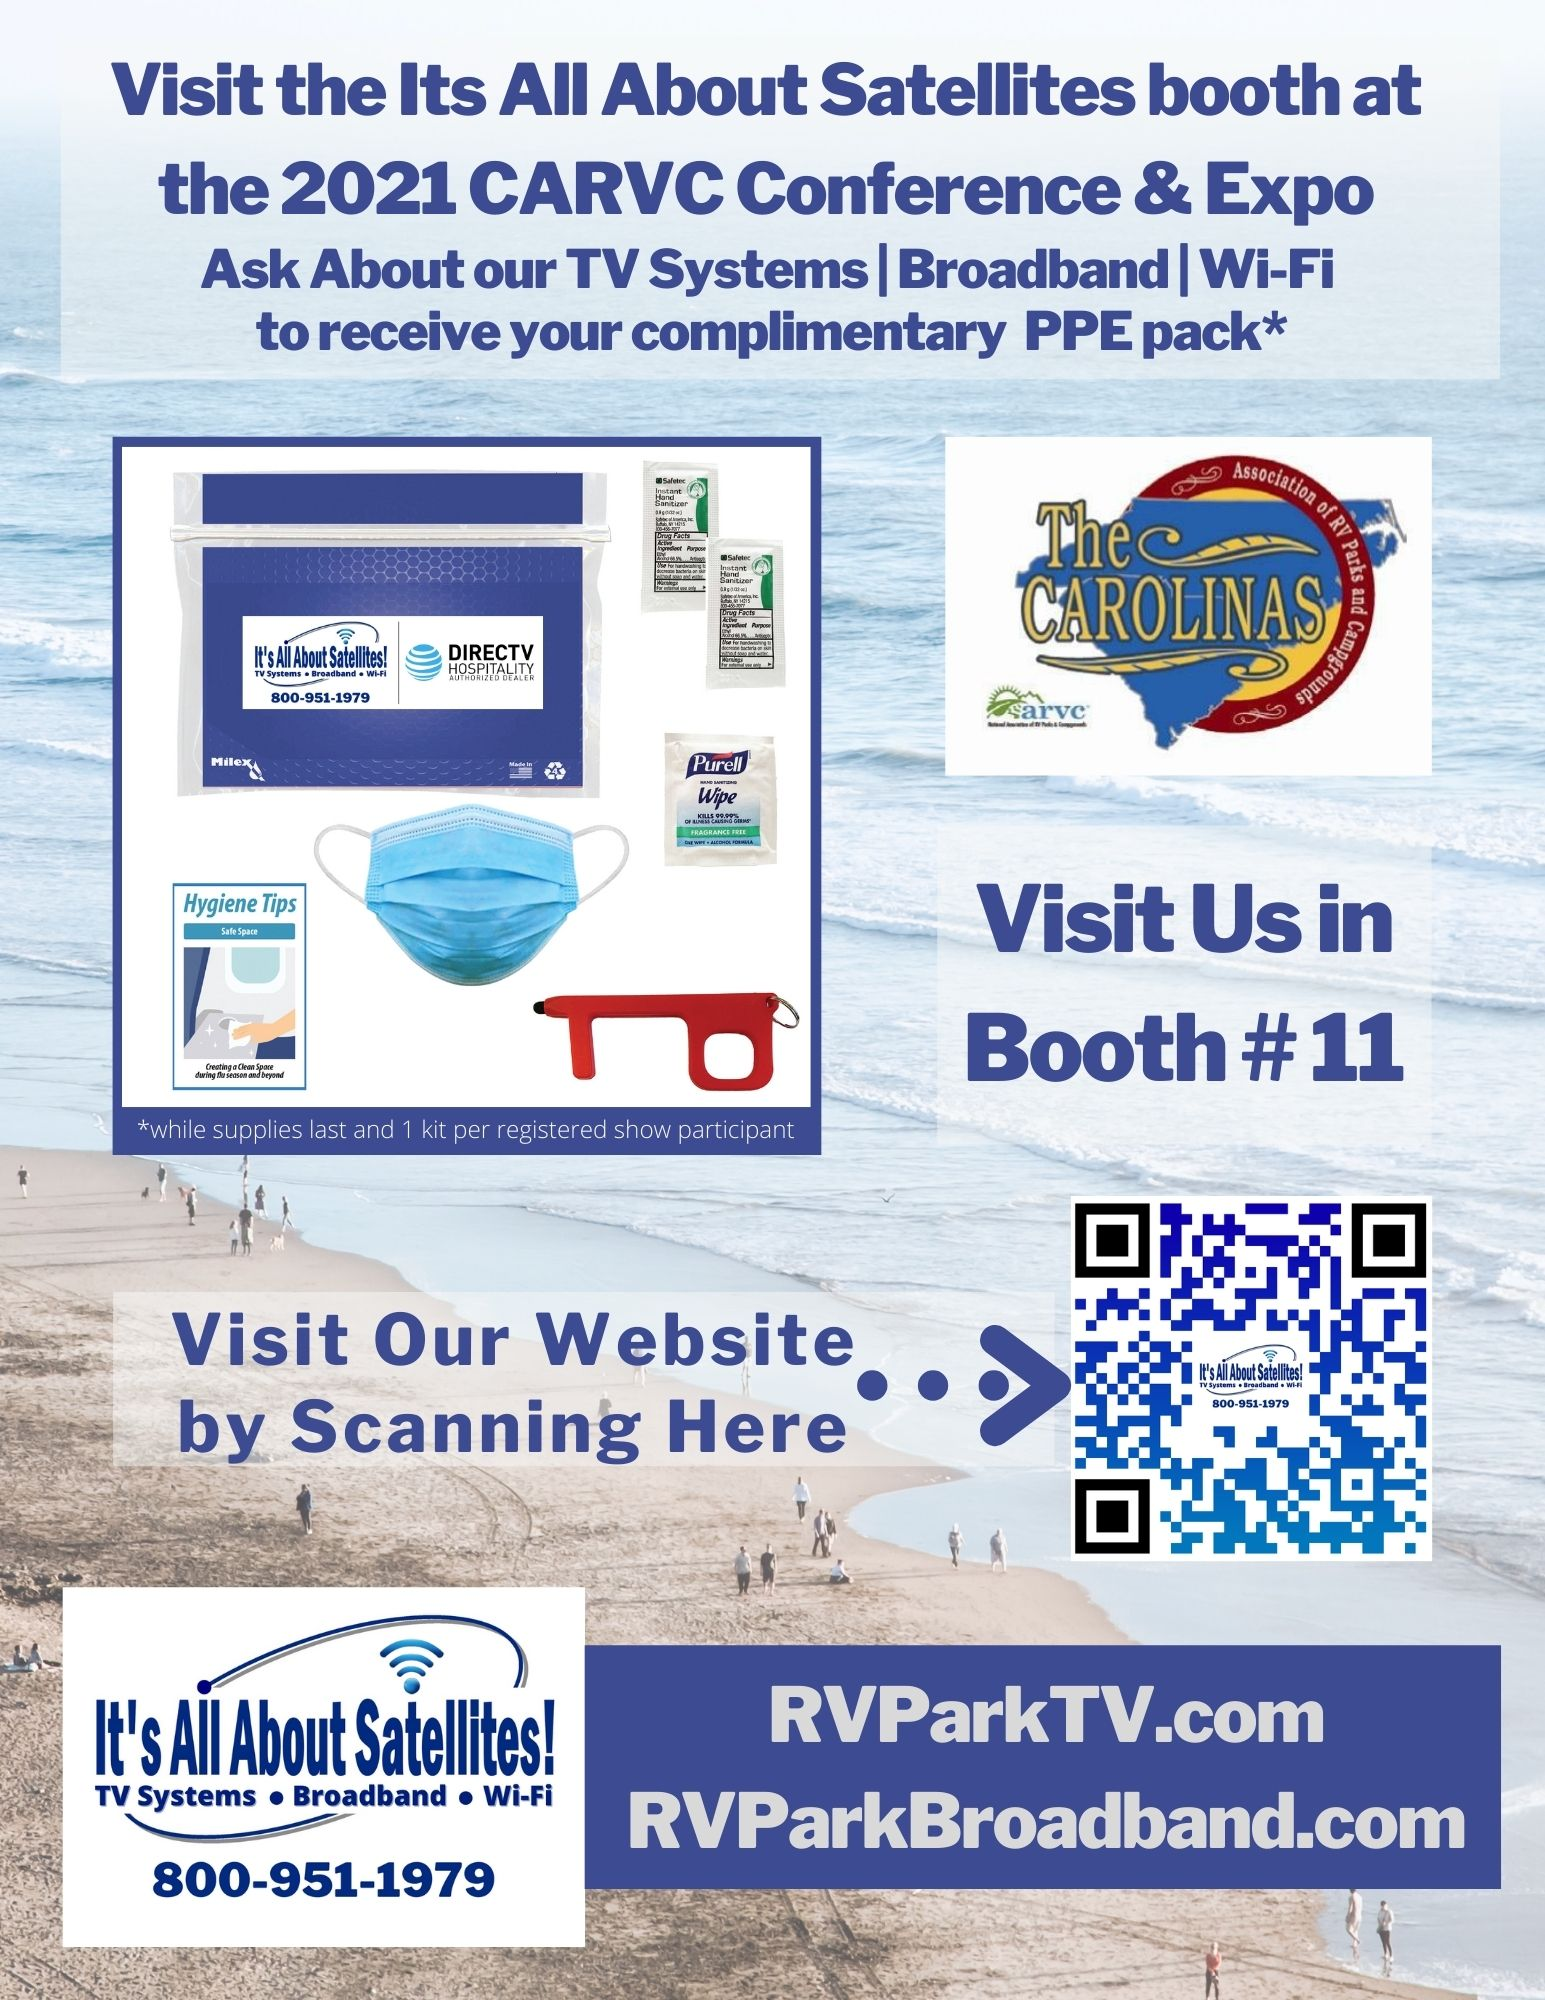 Visit Its All About Satellites in Booth 11 at the 2021 CARV Conference and Expo and Receive a Complimentary PPE Pack